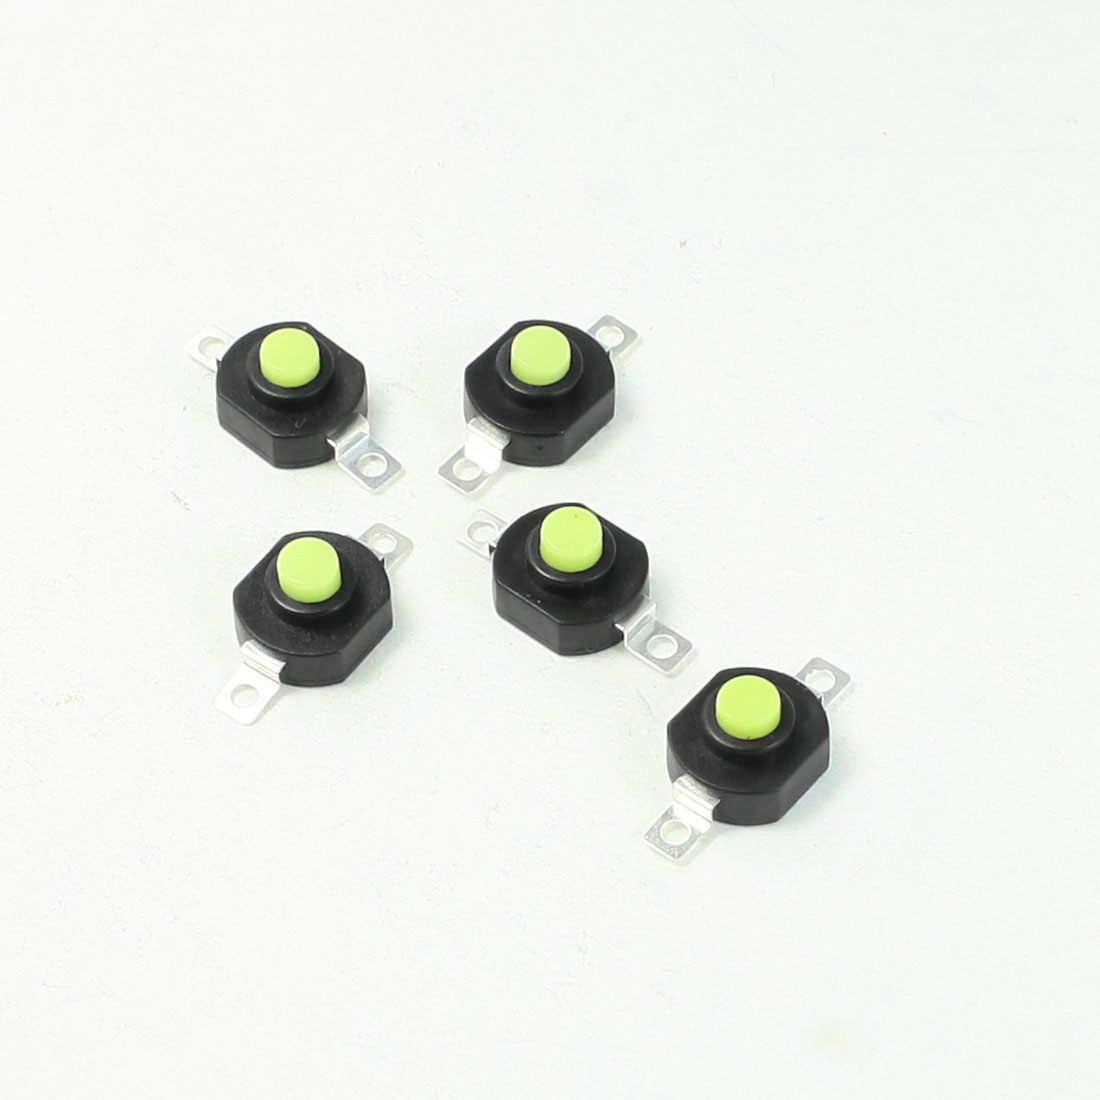 5 Pcs Horizontal On Off Position Torch Push Button Switch AC 250V 1.5A